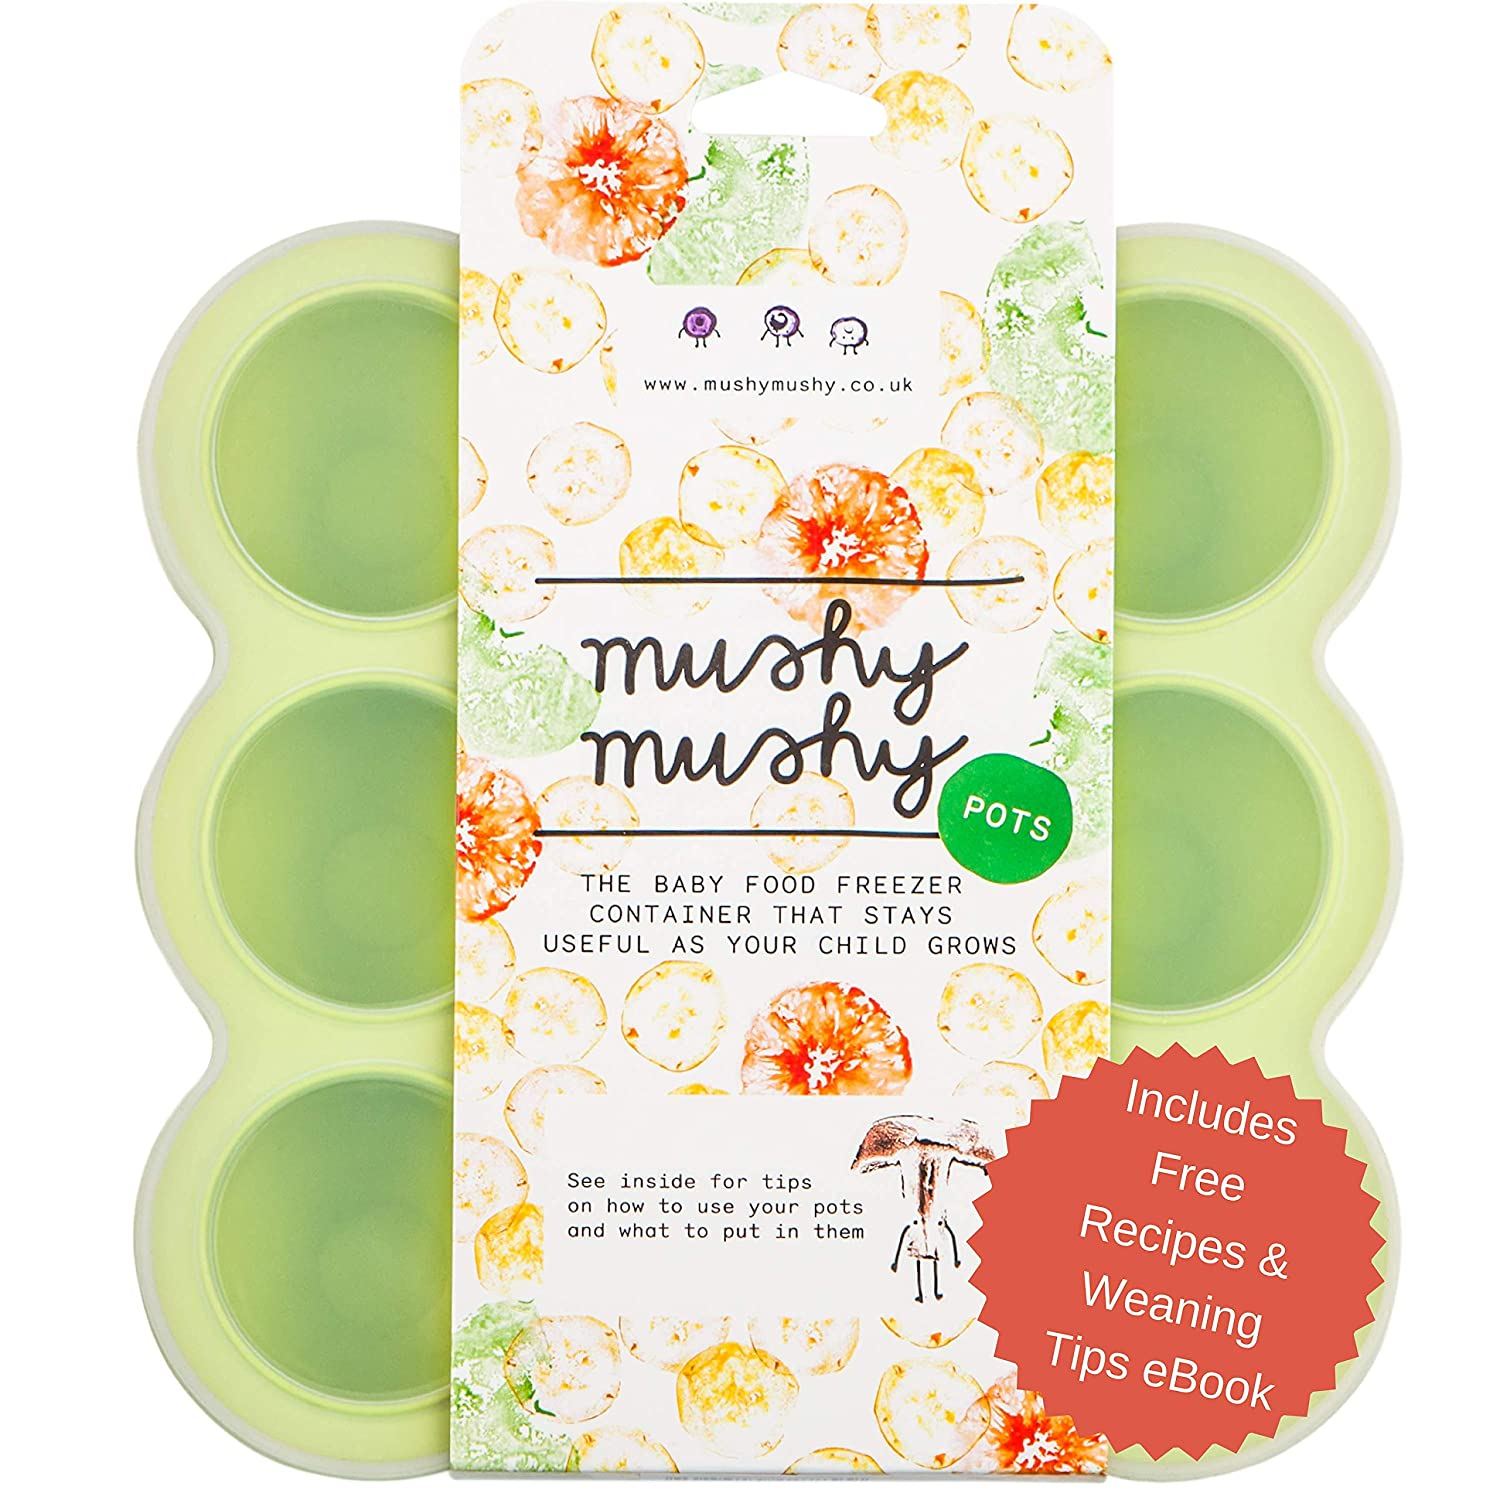 Weaning Pots by Mushy Mushy Easy To Remove Baby Food Storage Container with Lid